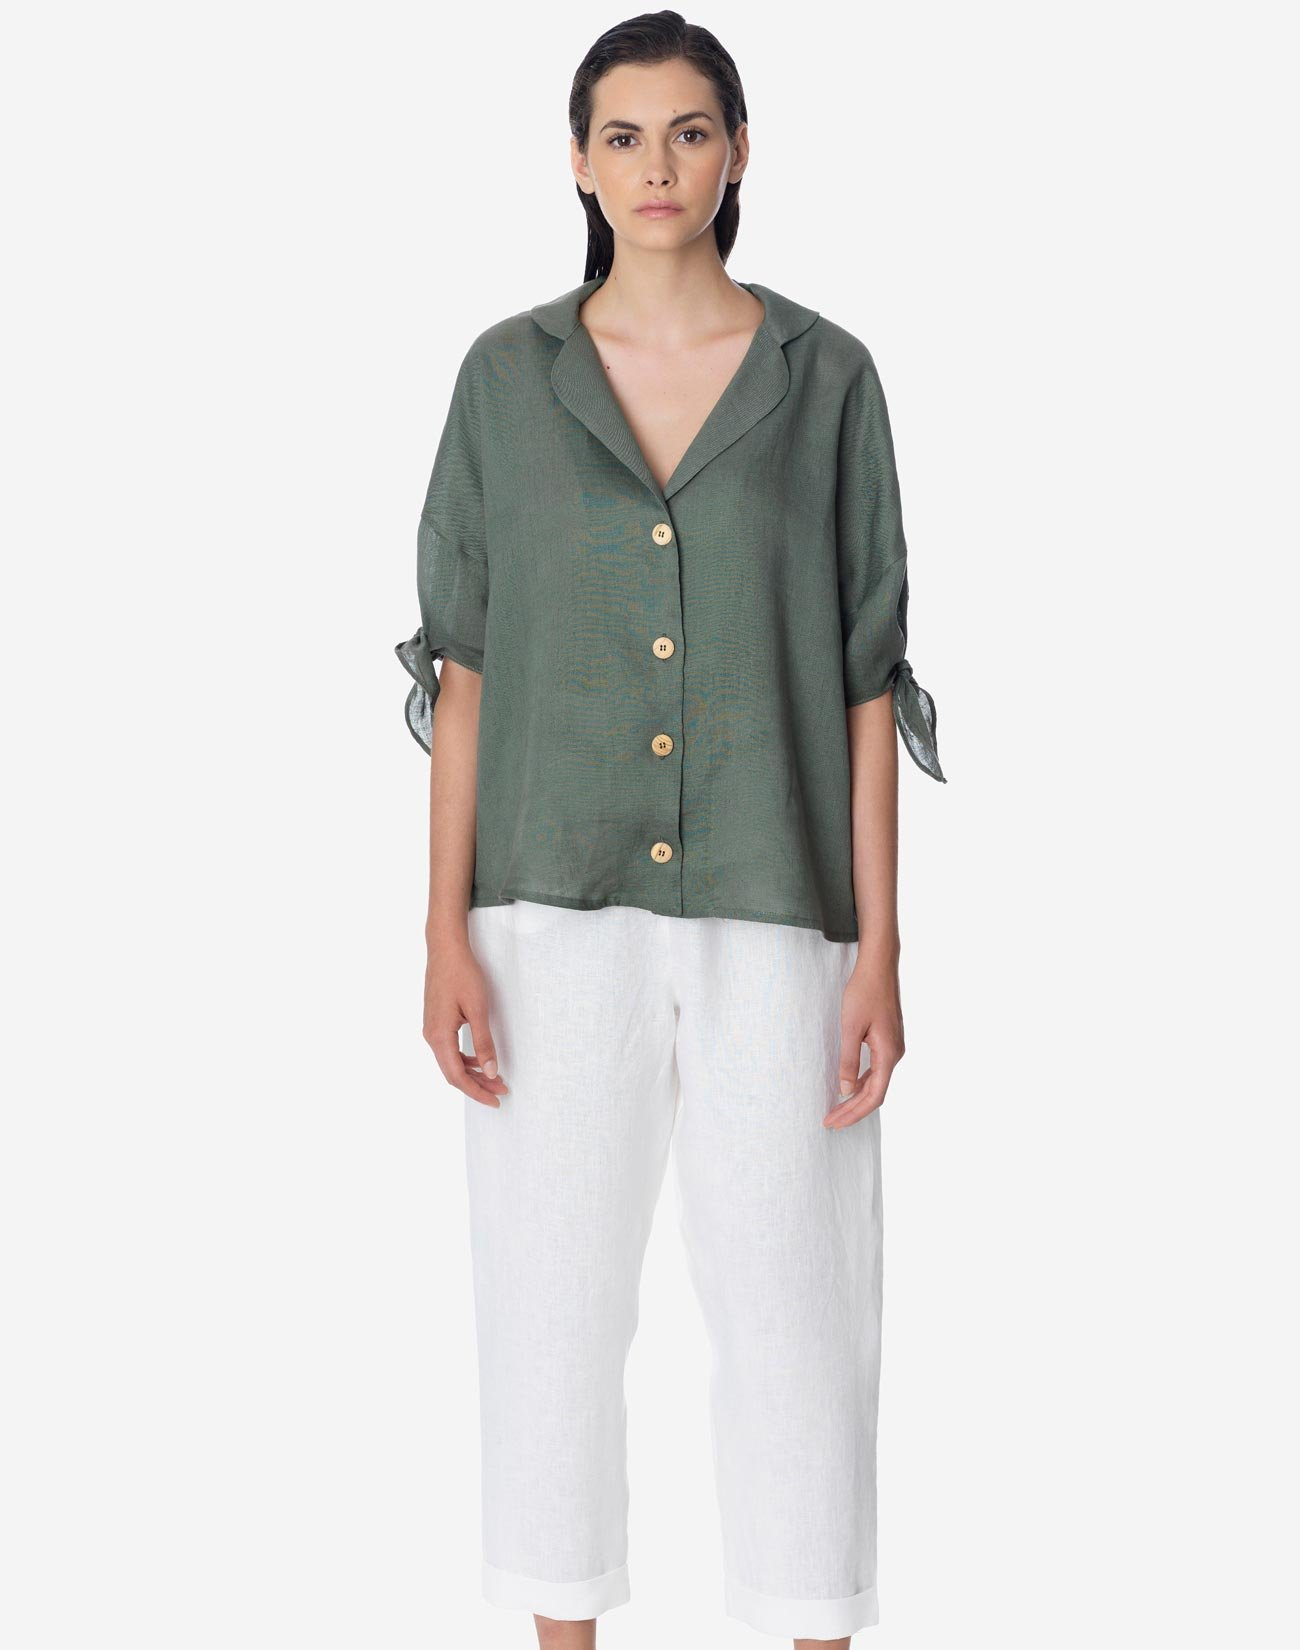 Linen shirt with tie sleeves